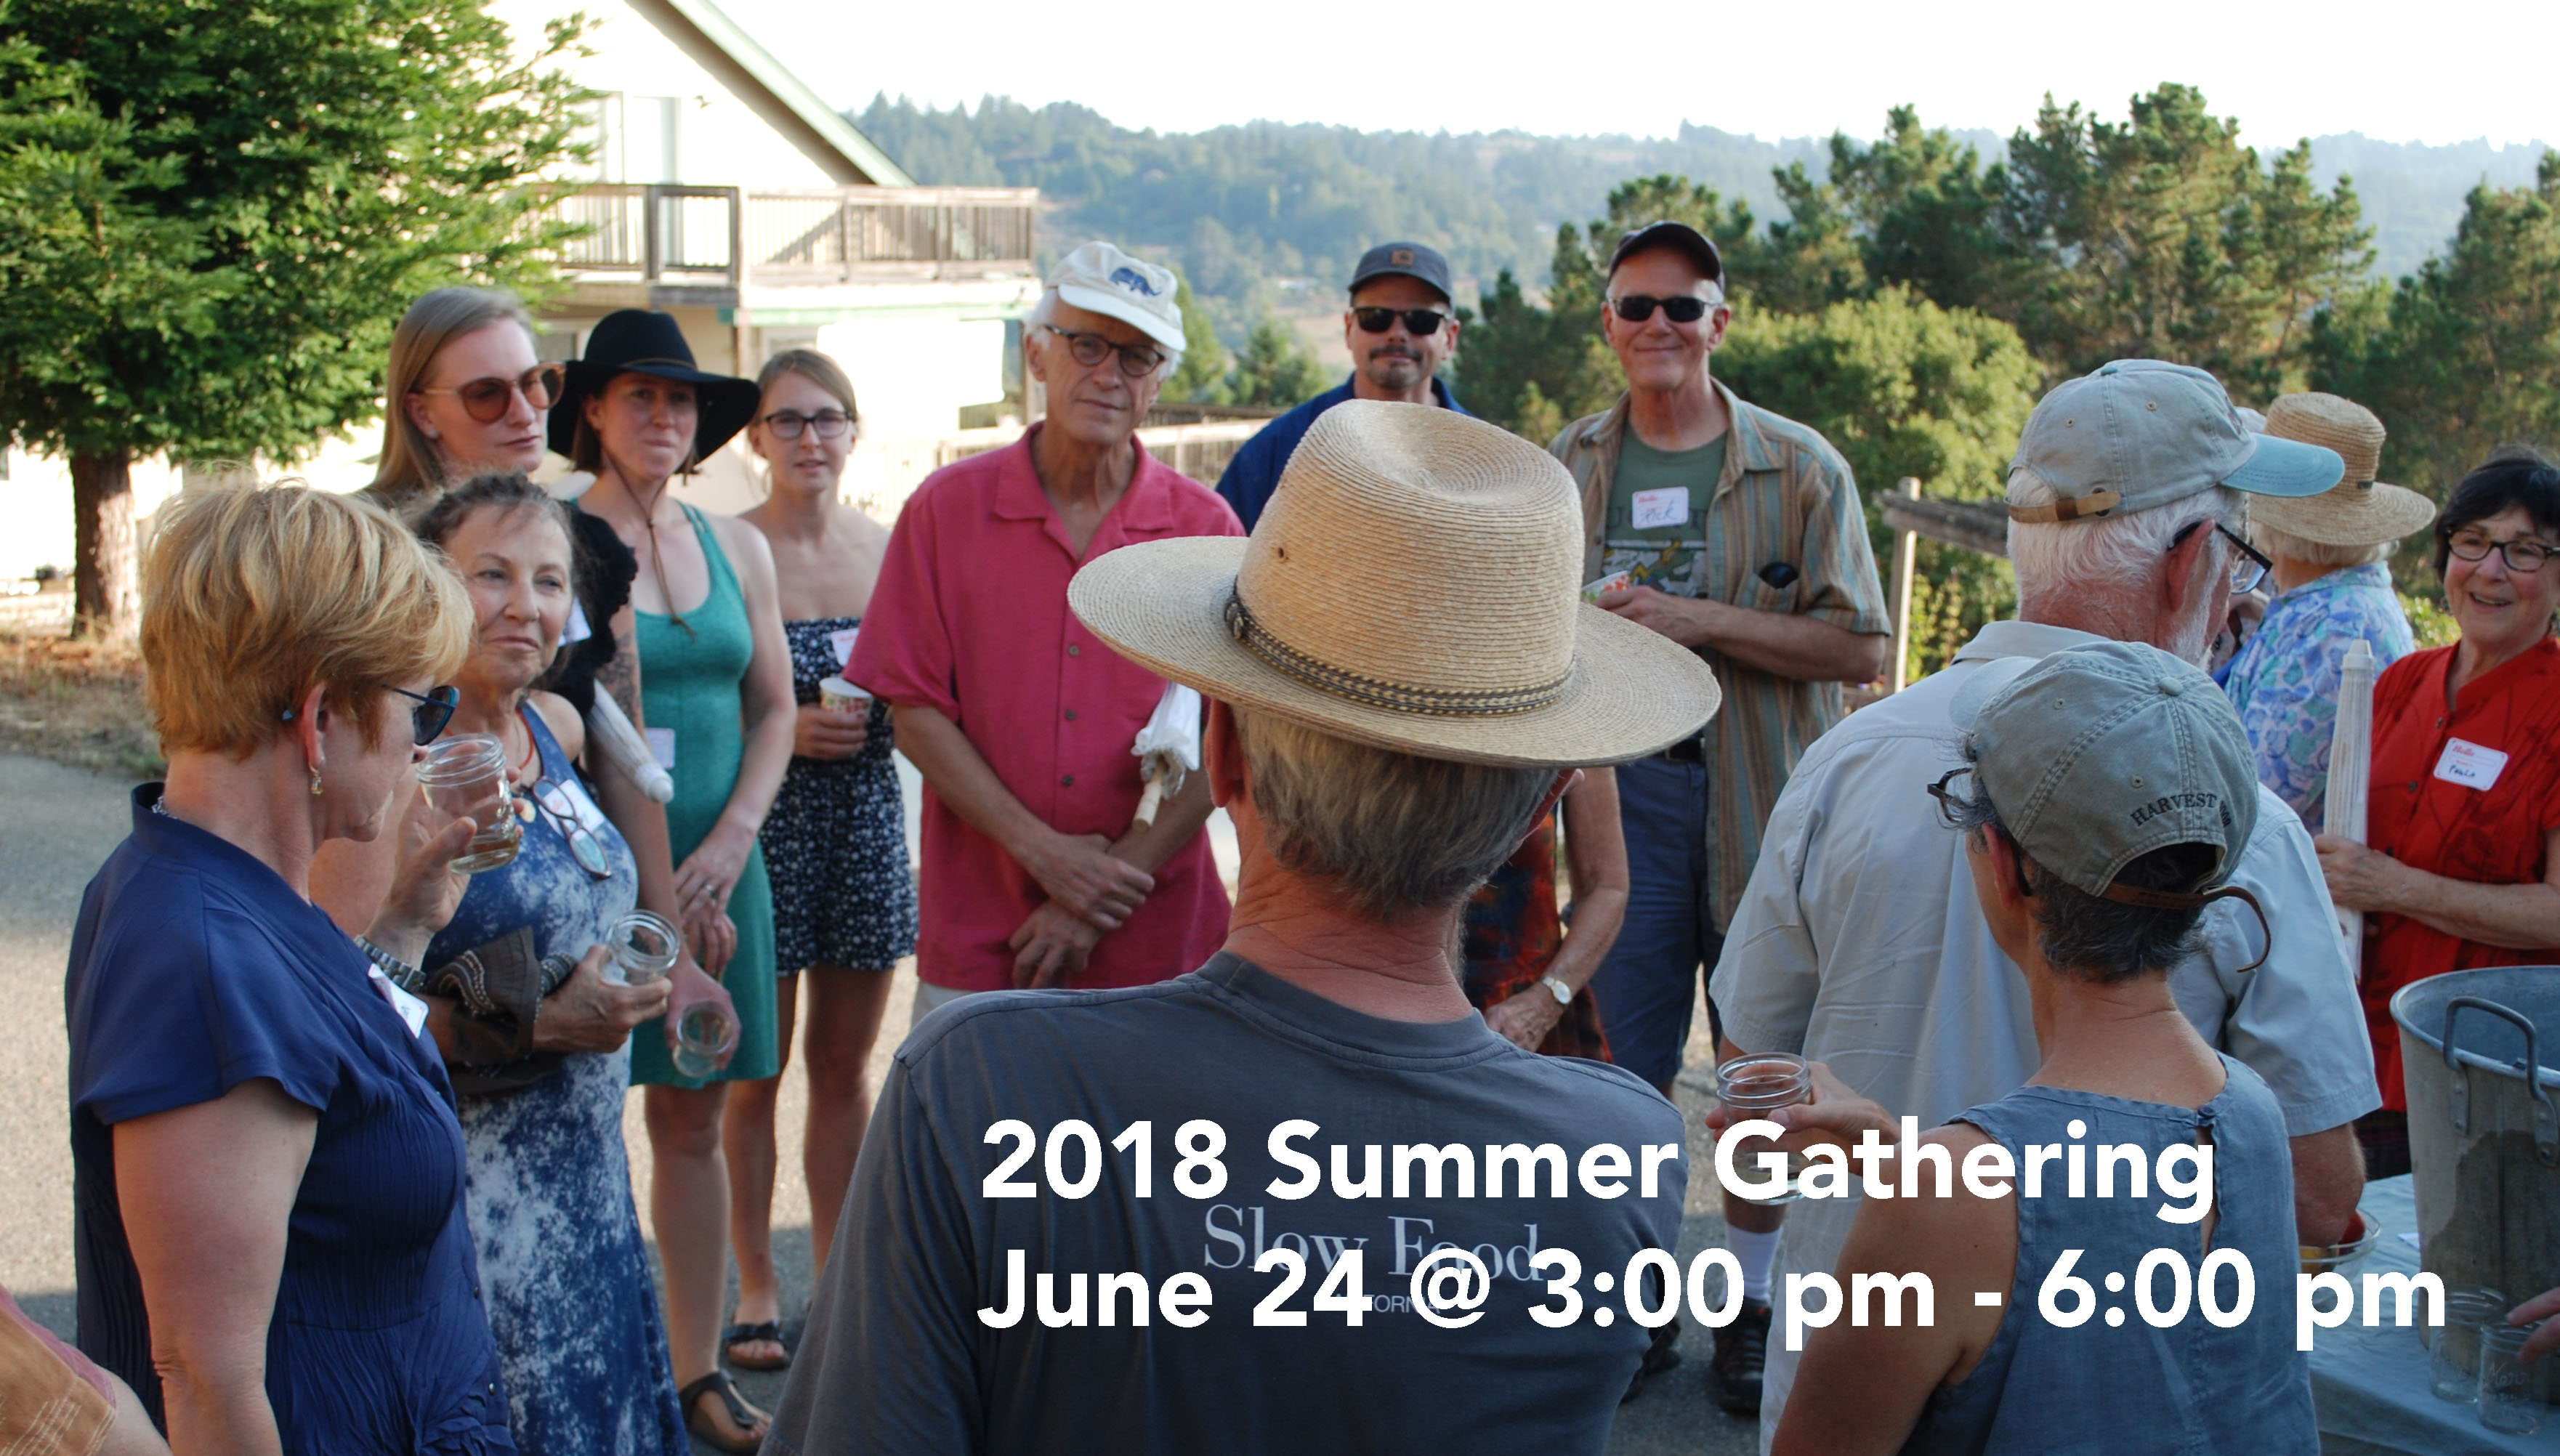 2018 Summer Gathering June 24 @ 3:00 pm - 6:00 pm